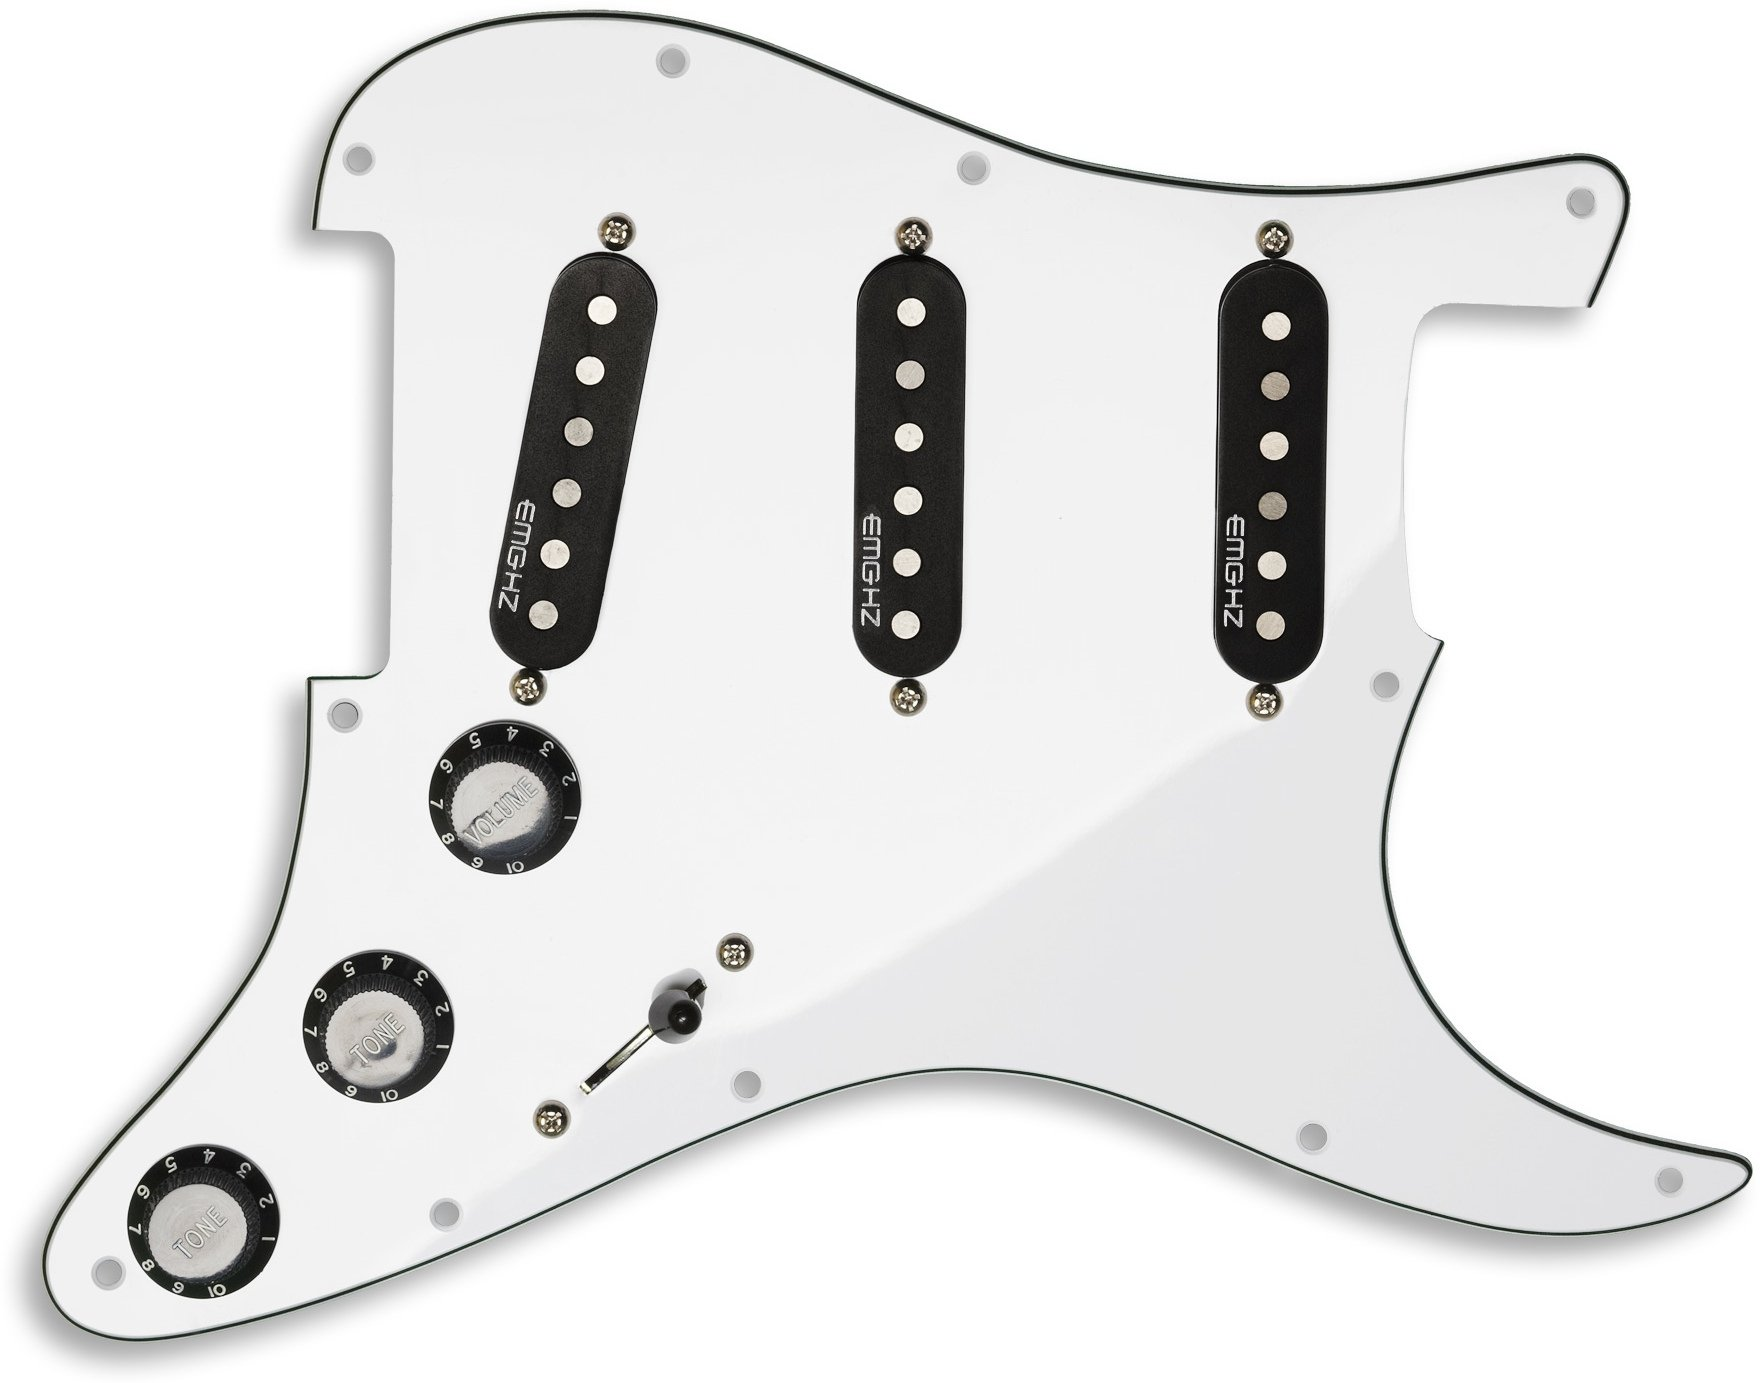 EMG ST11 Strat Style Pre-Wired Pickguard S/S/S White | Sweetwater